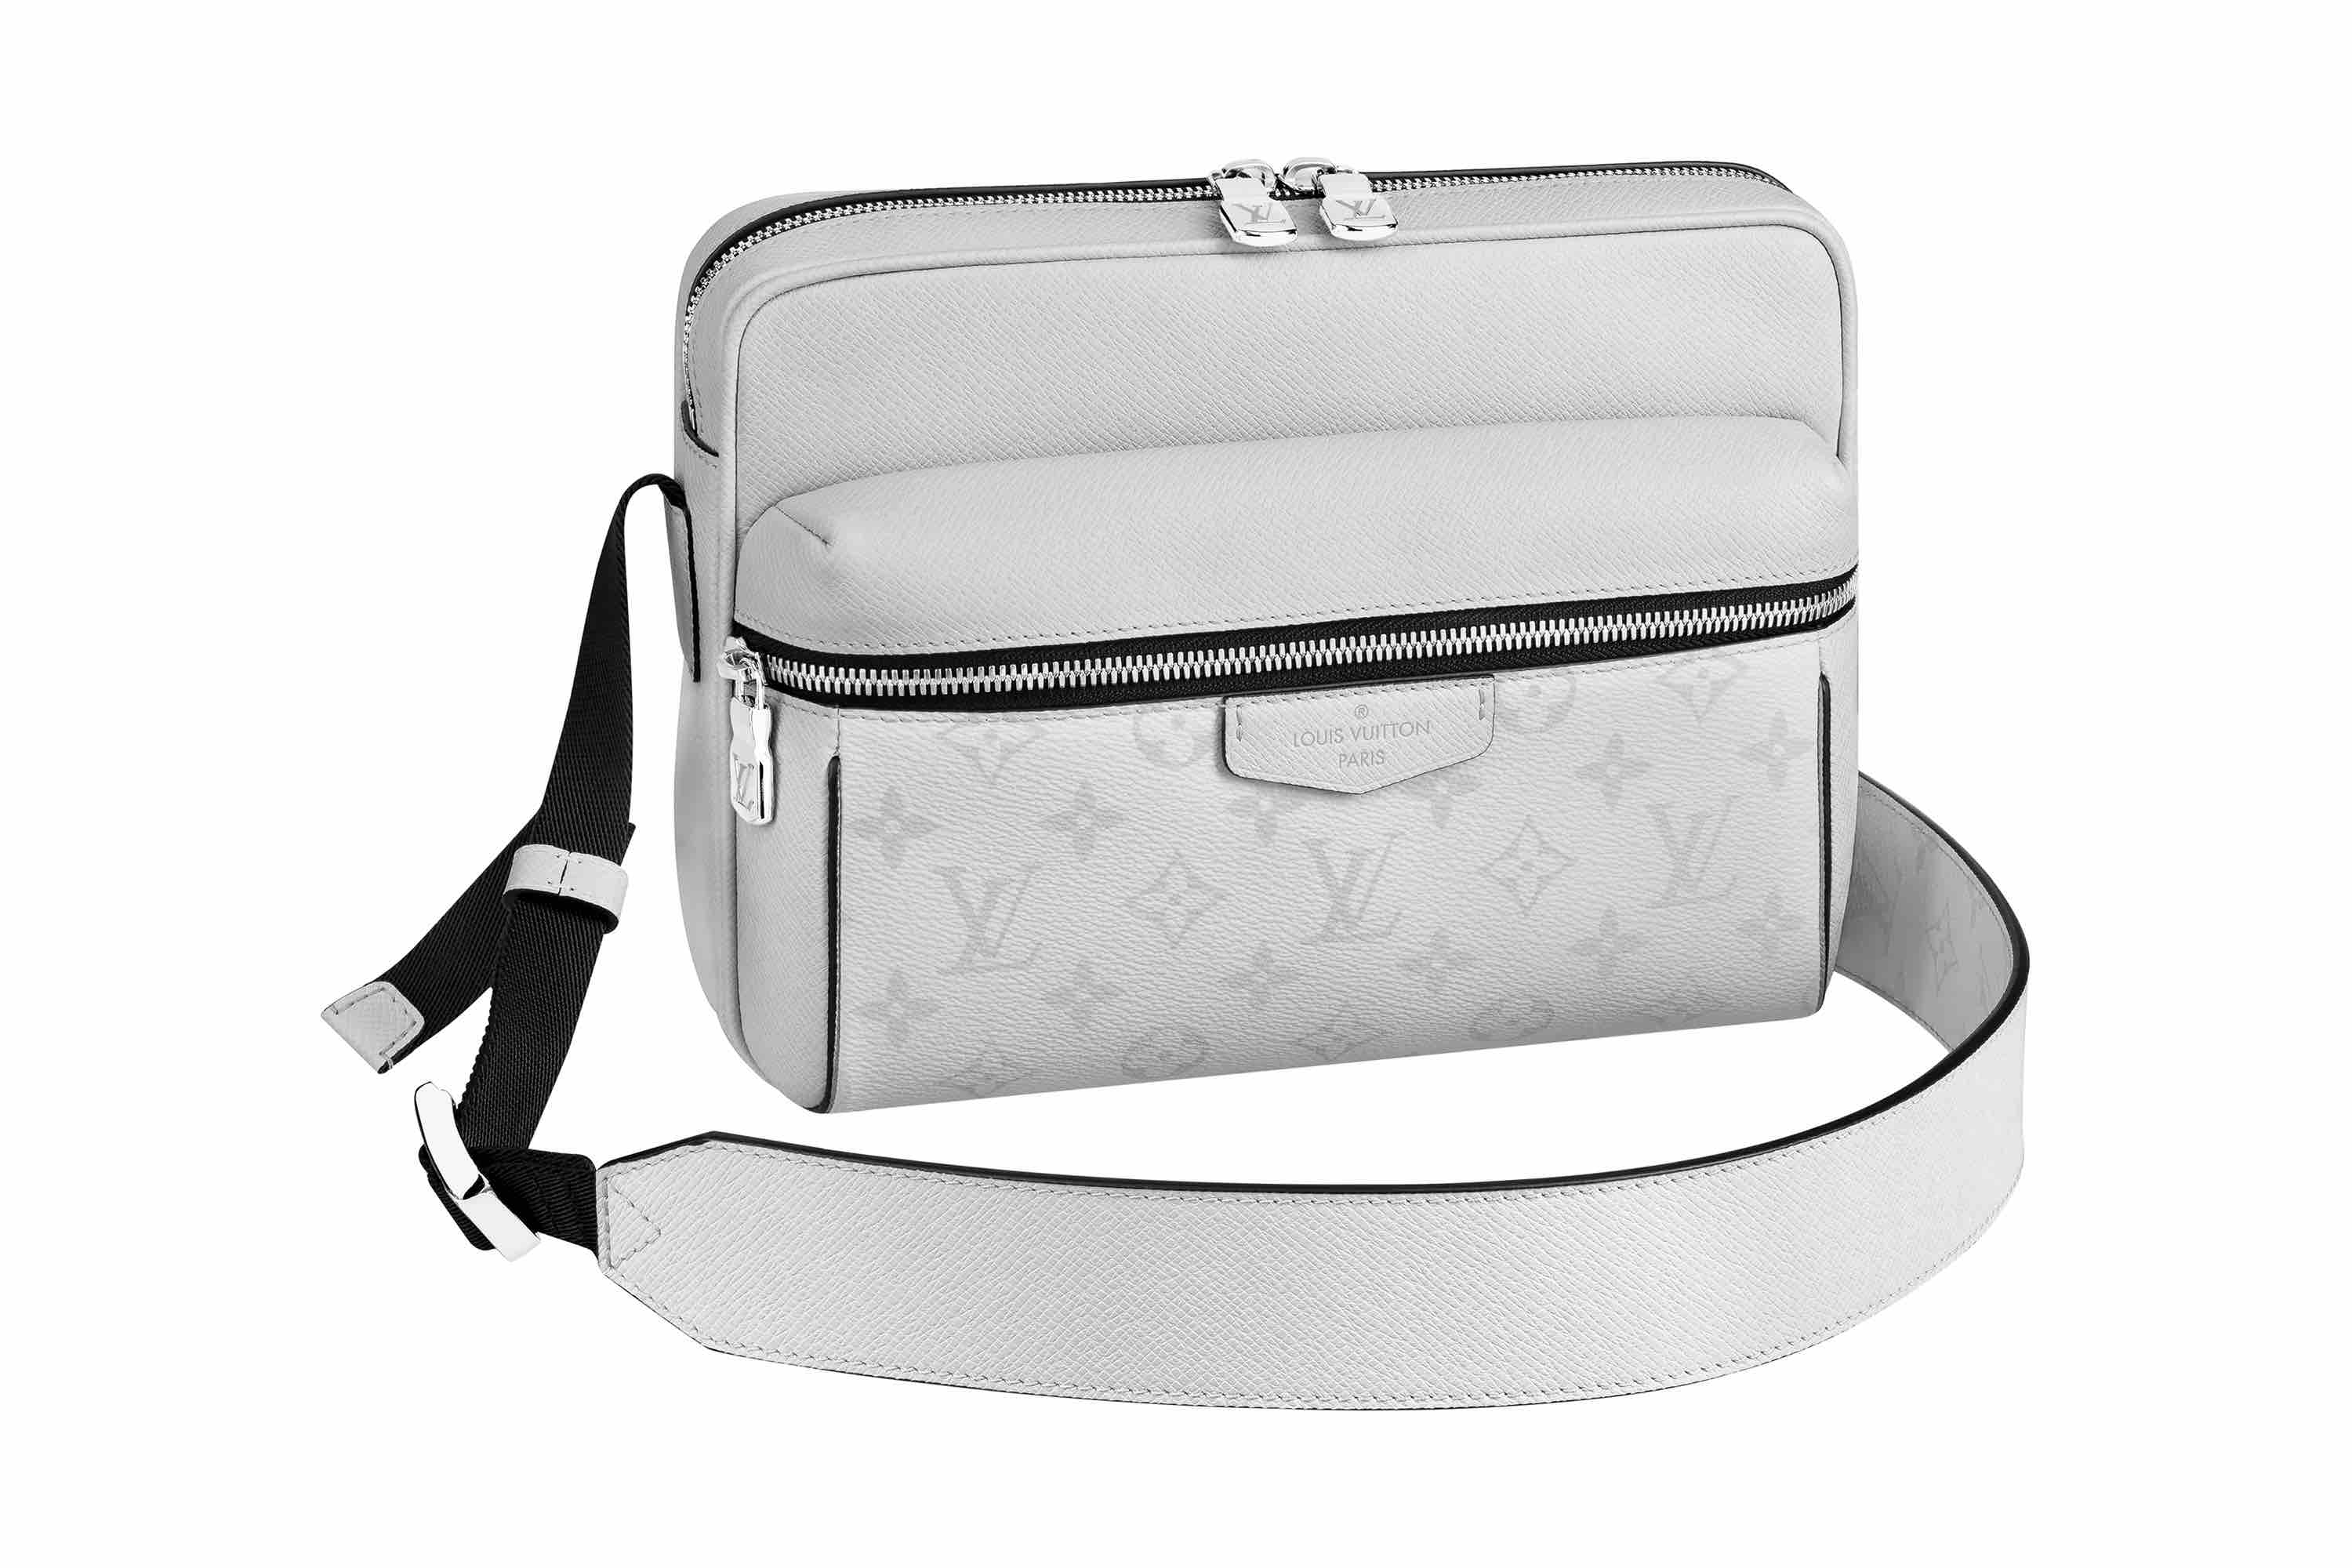 Louis Vuitton Taigarama Collection grey crossover bag